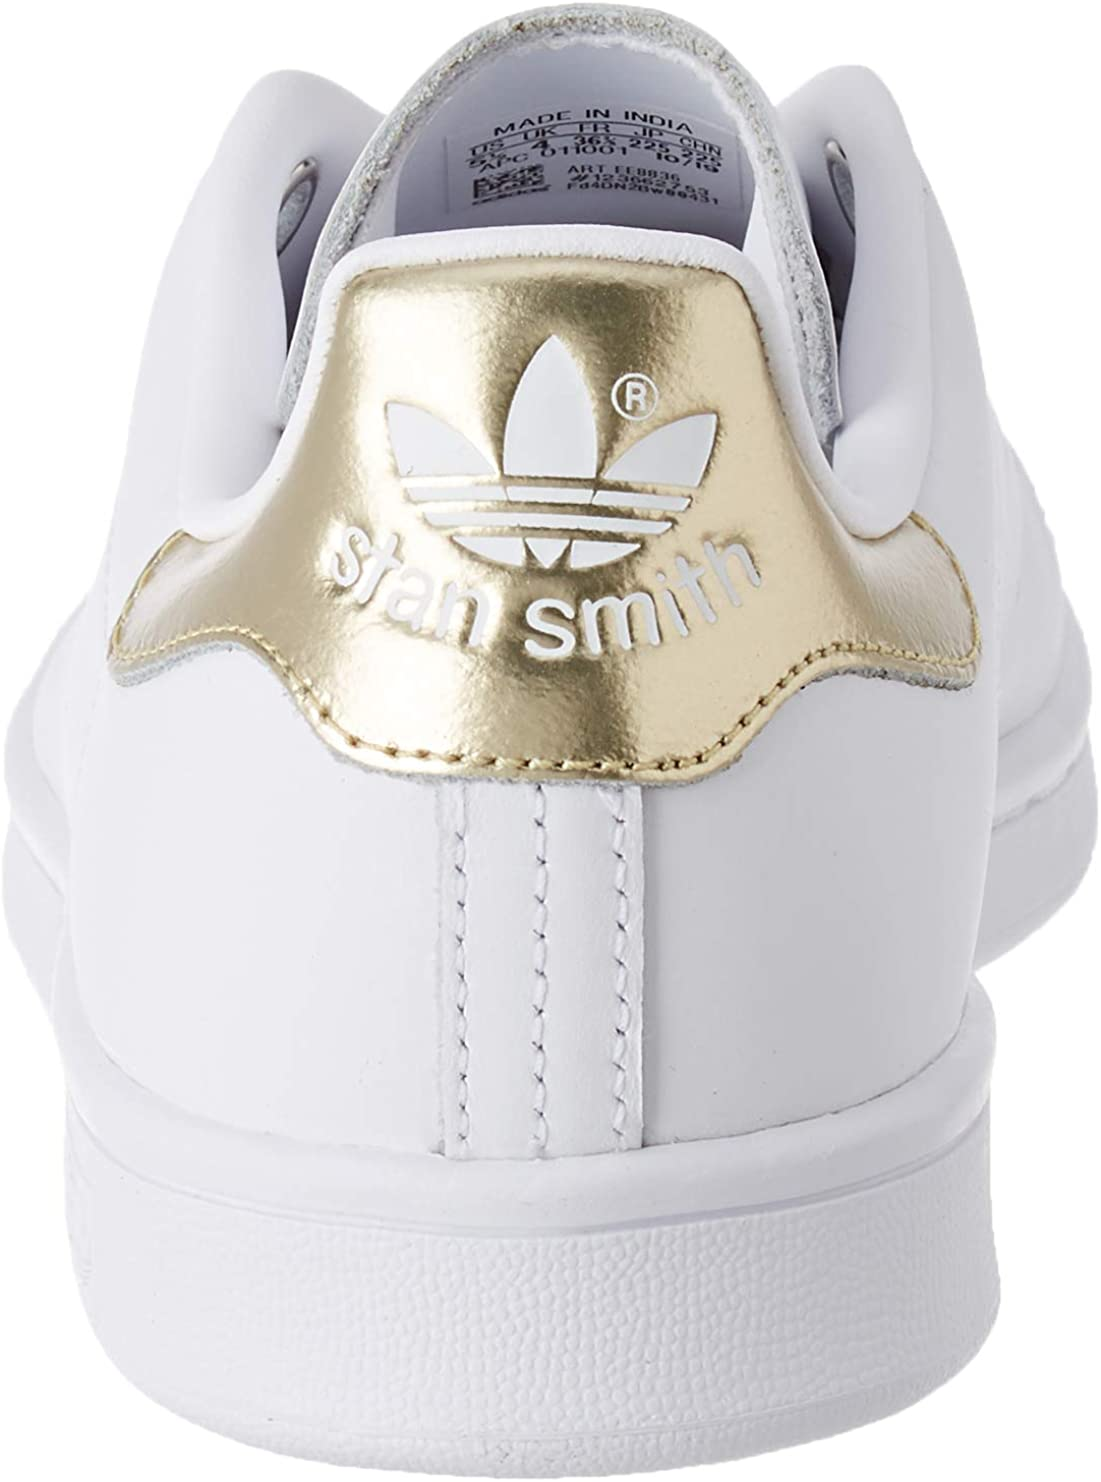 adidas Originals Women's Stan Smith Sneakers Leather -Gold White